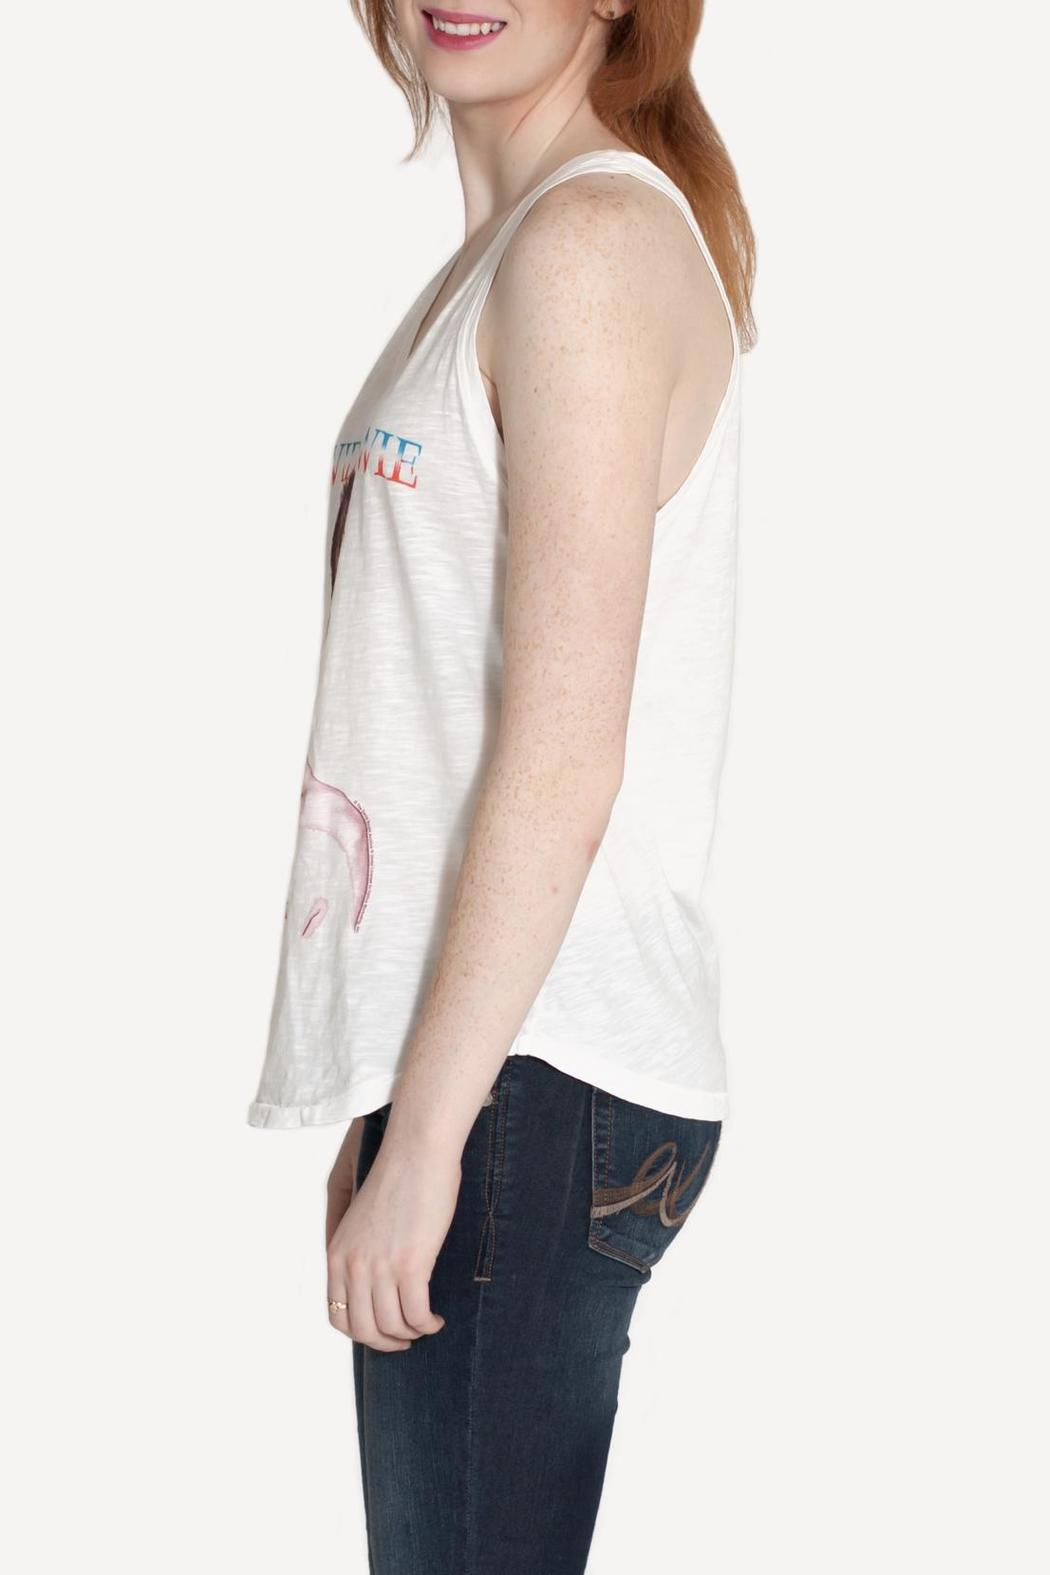 Junk Food Clothing David Bowie Tank - Side Cropped Image